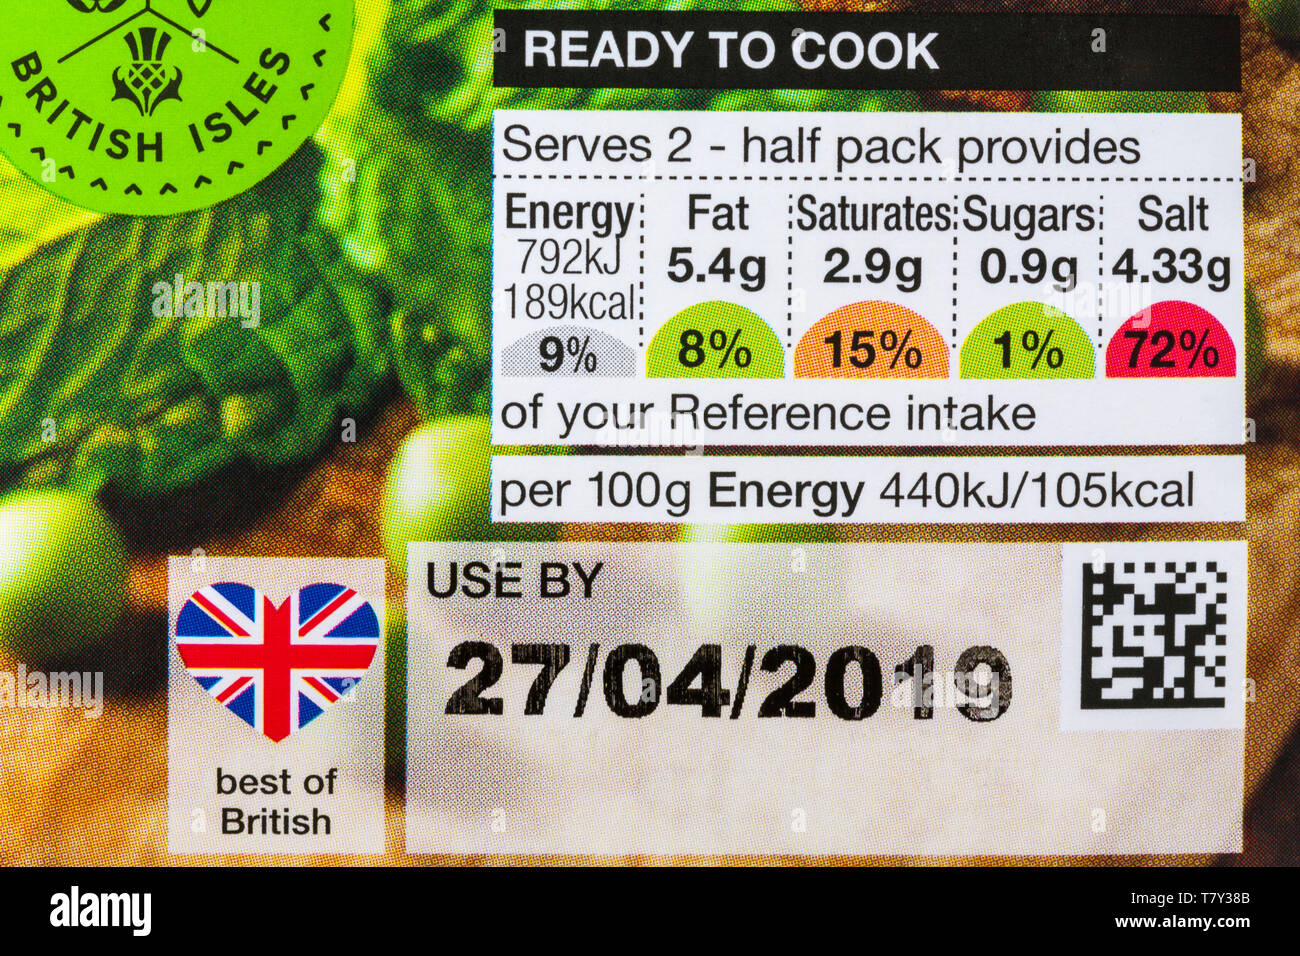 Reference intake nutritional information traffic light system labelling on food packaging - Stock Image